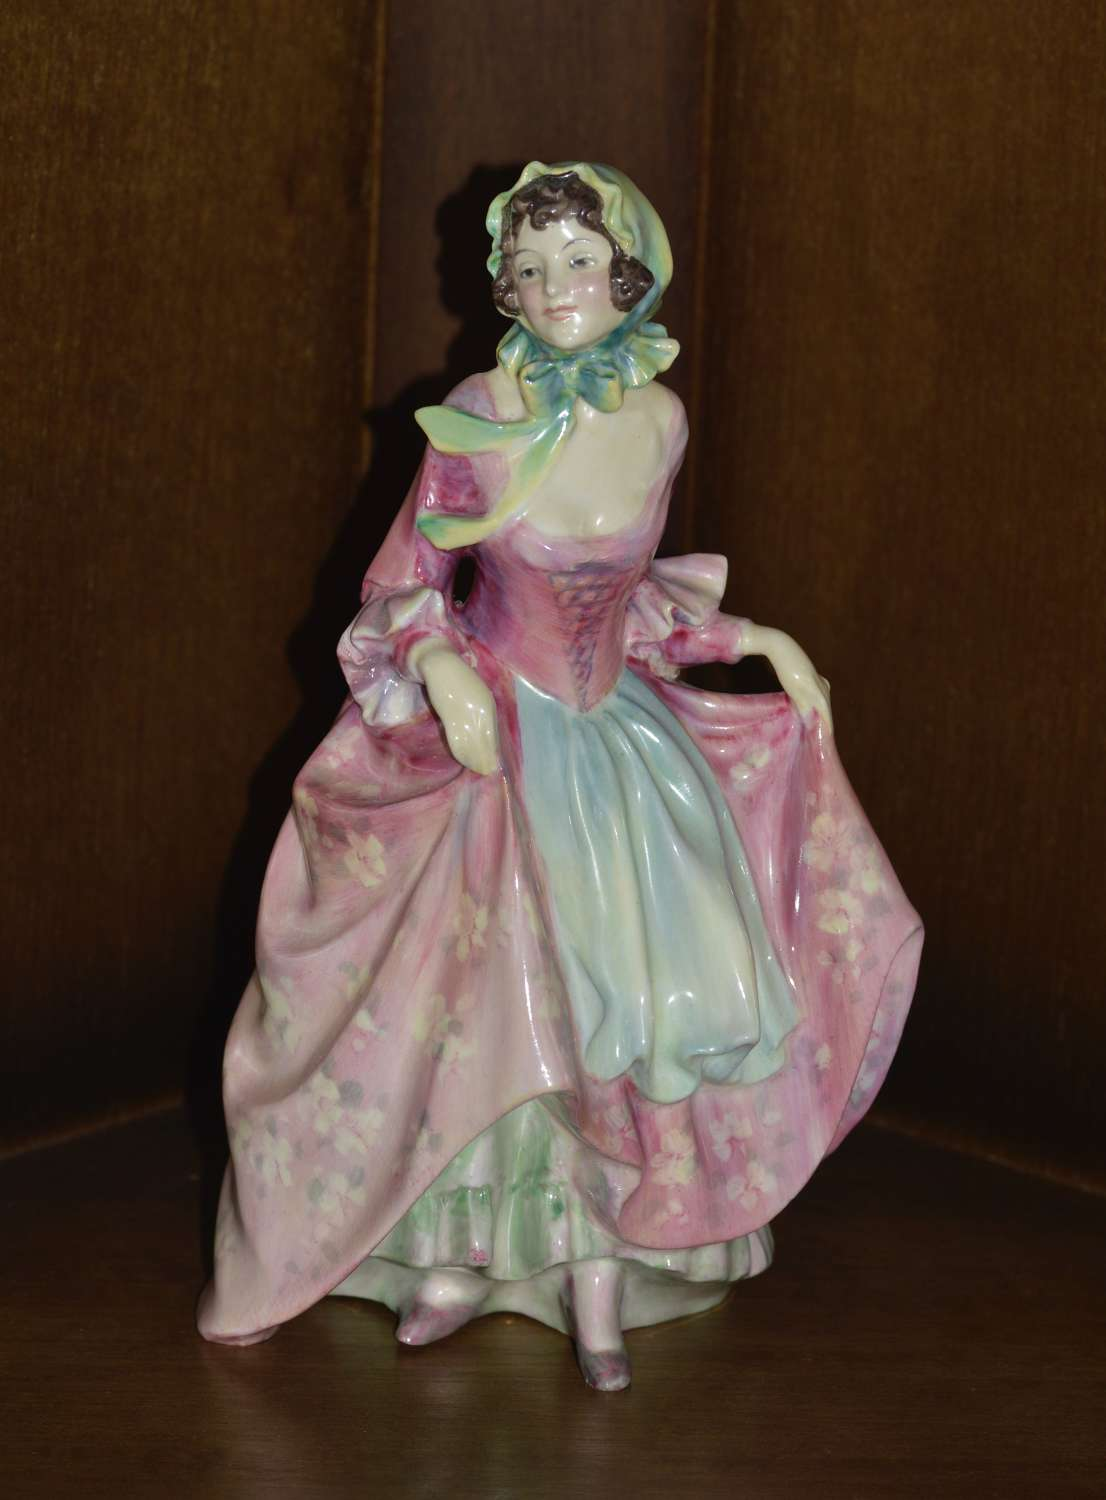 Royal Doulton 'Suzette' Figure - Early Rare Issue Year 1934